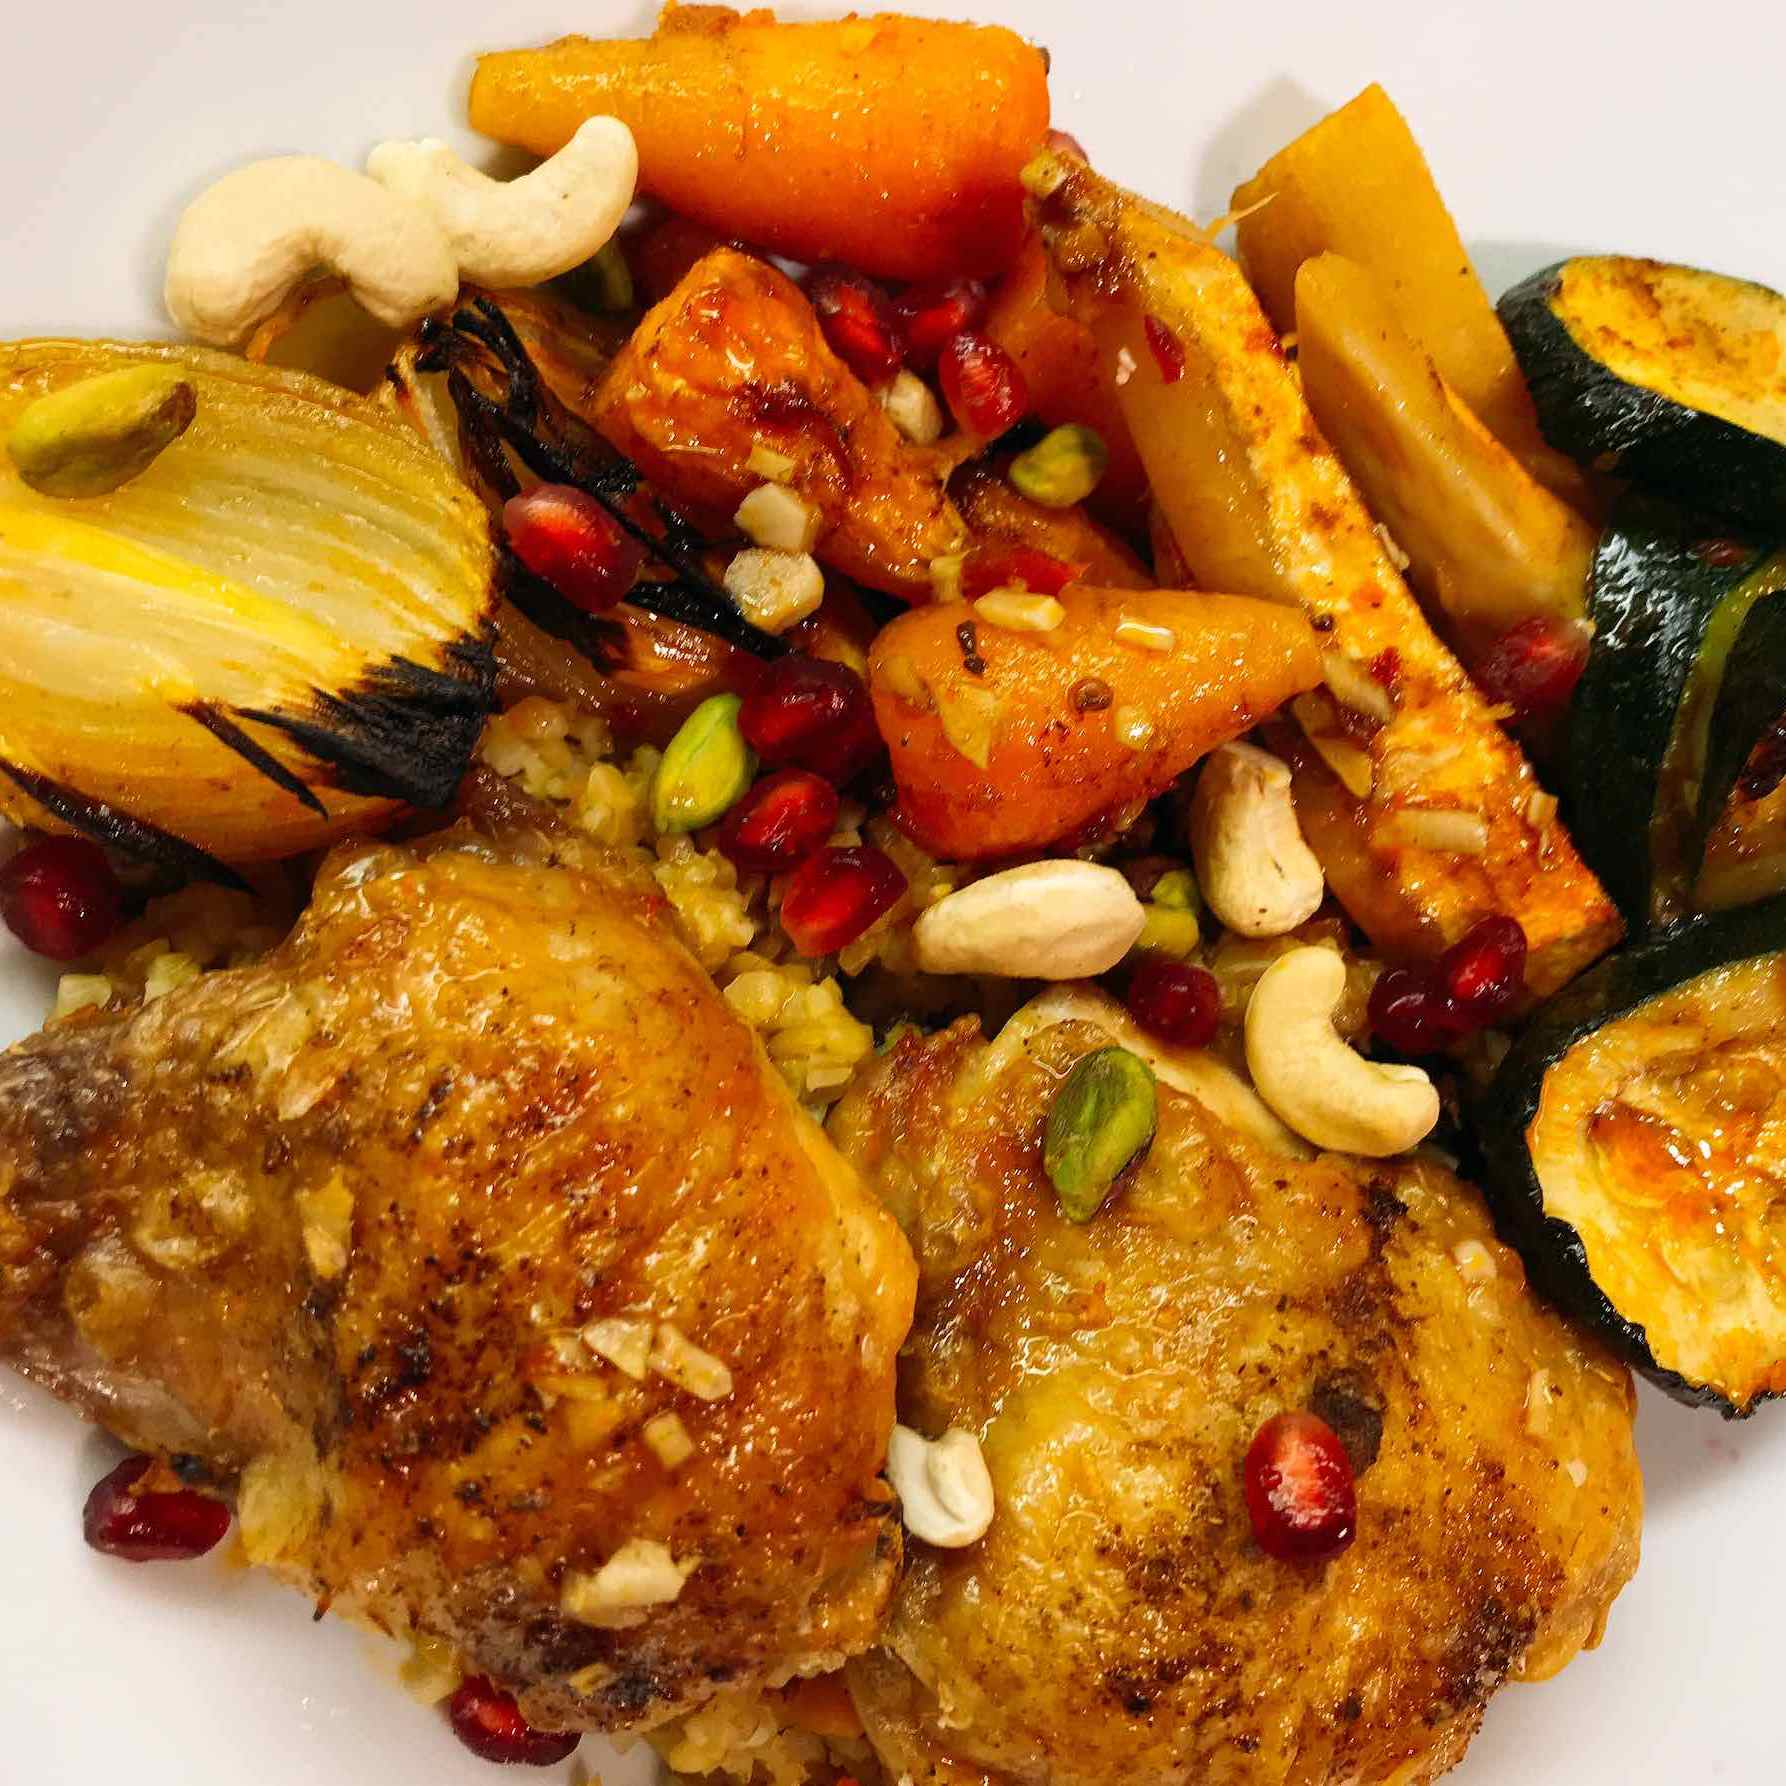 Plated Moroccan chicken dish